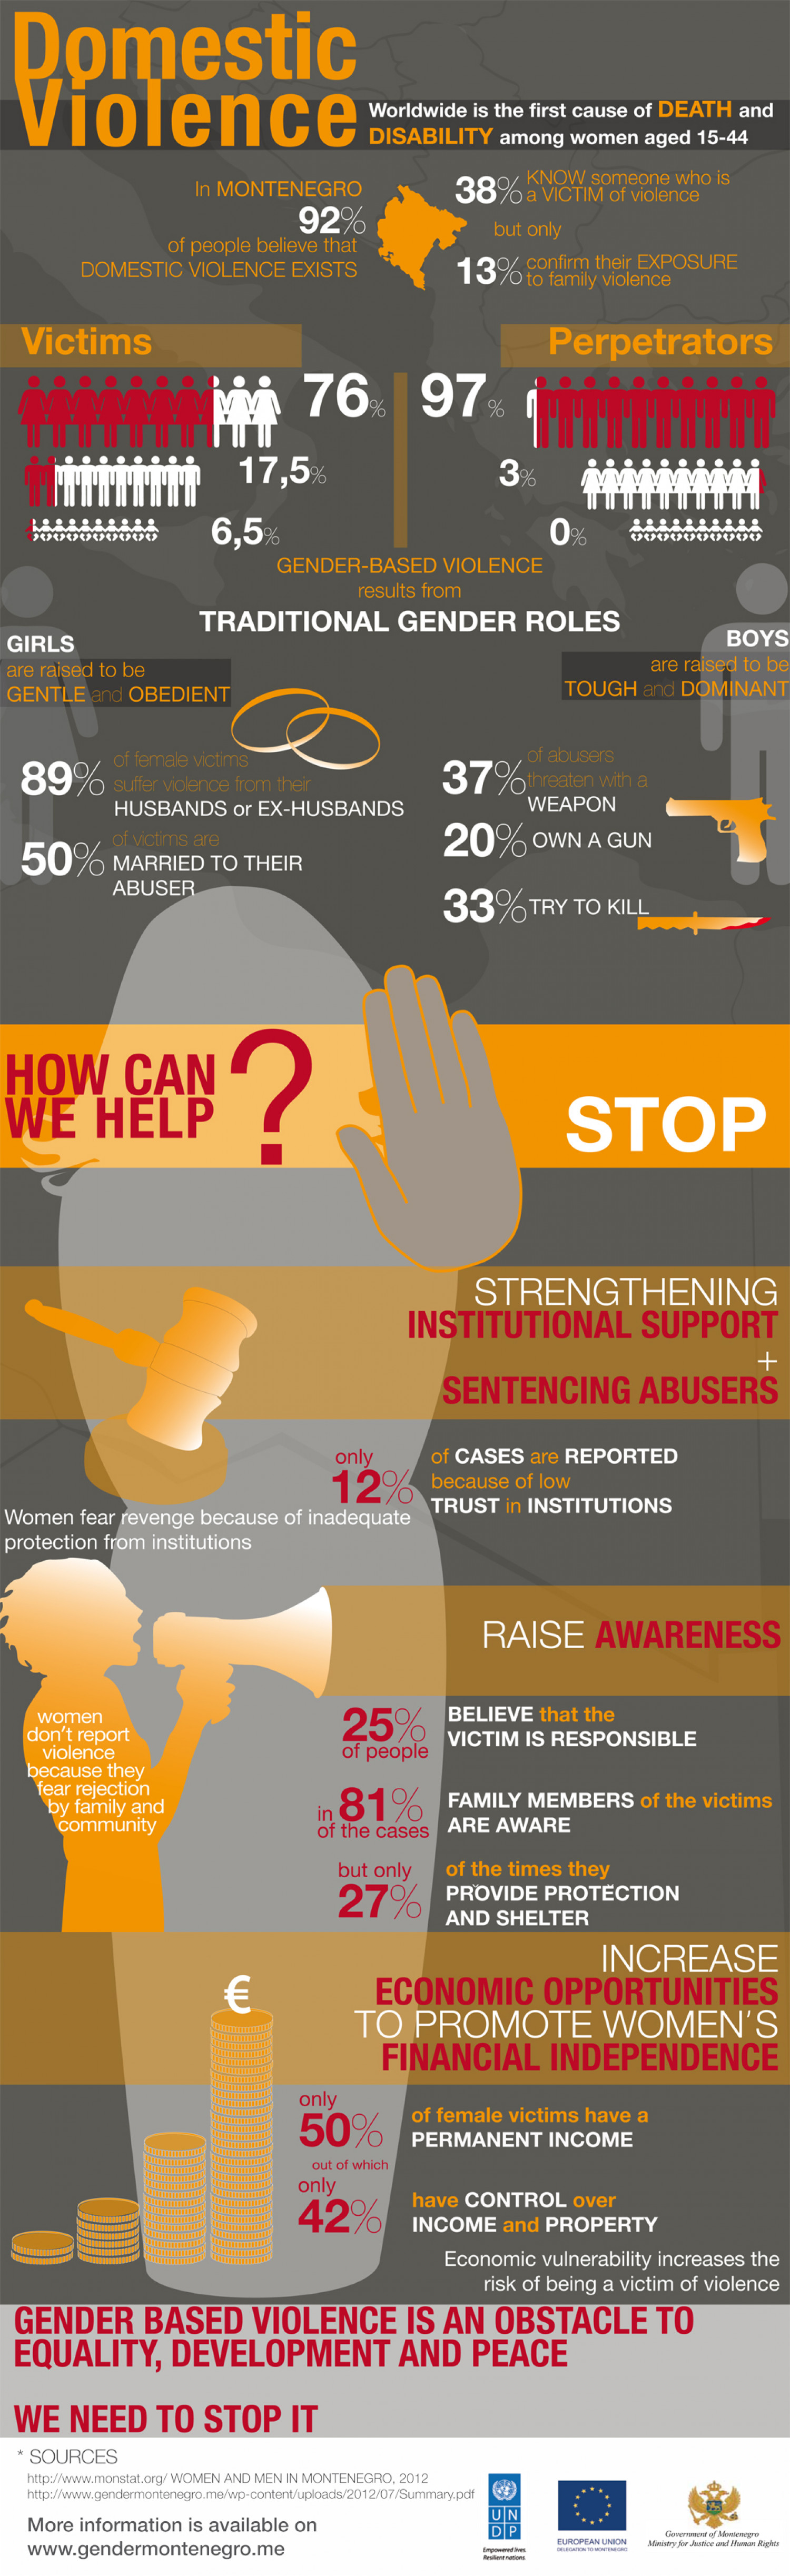 Domestic Violence in Montenegro Infographic